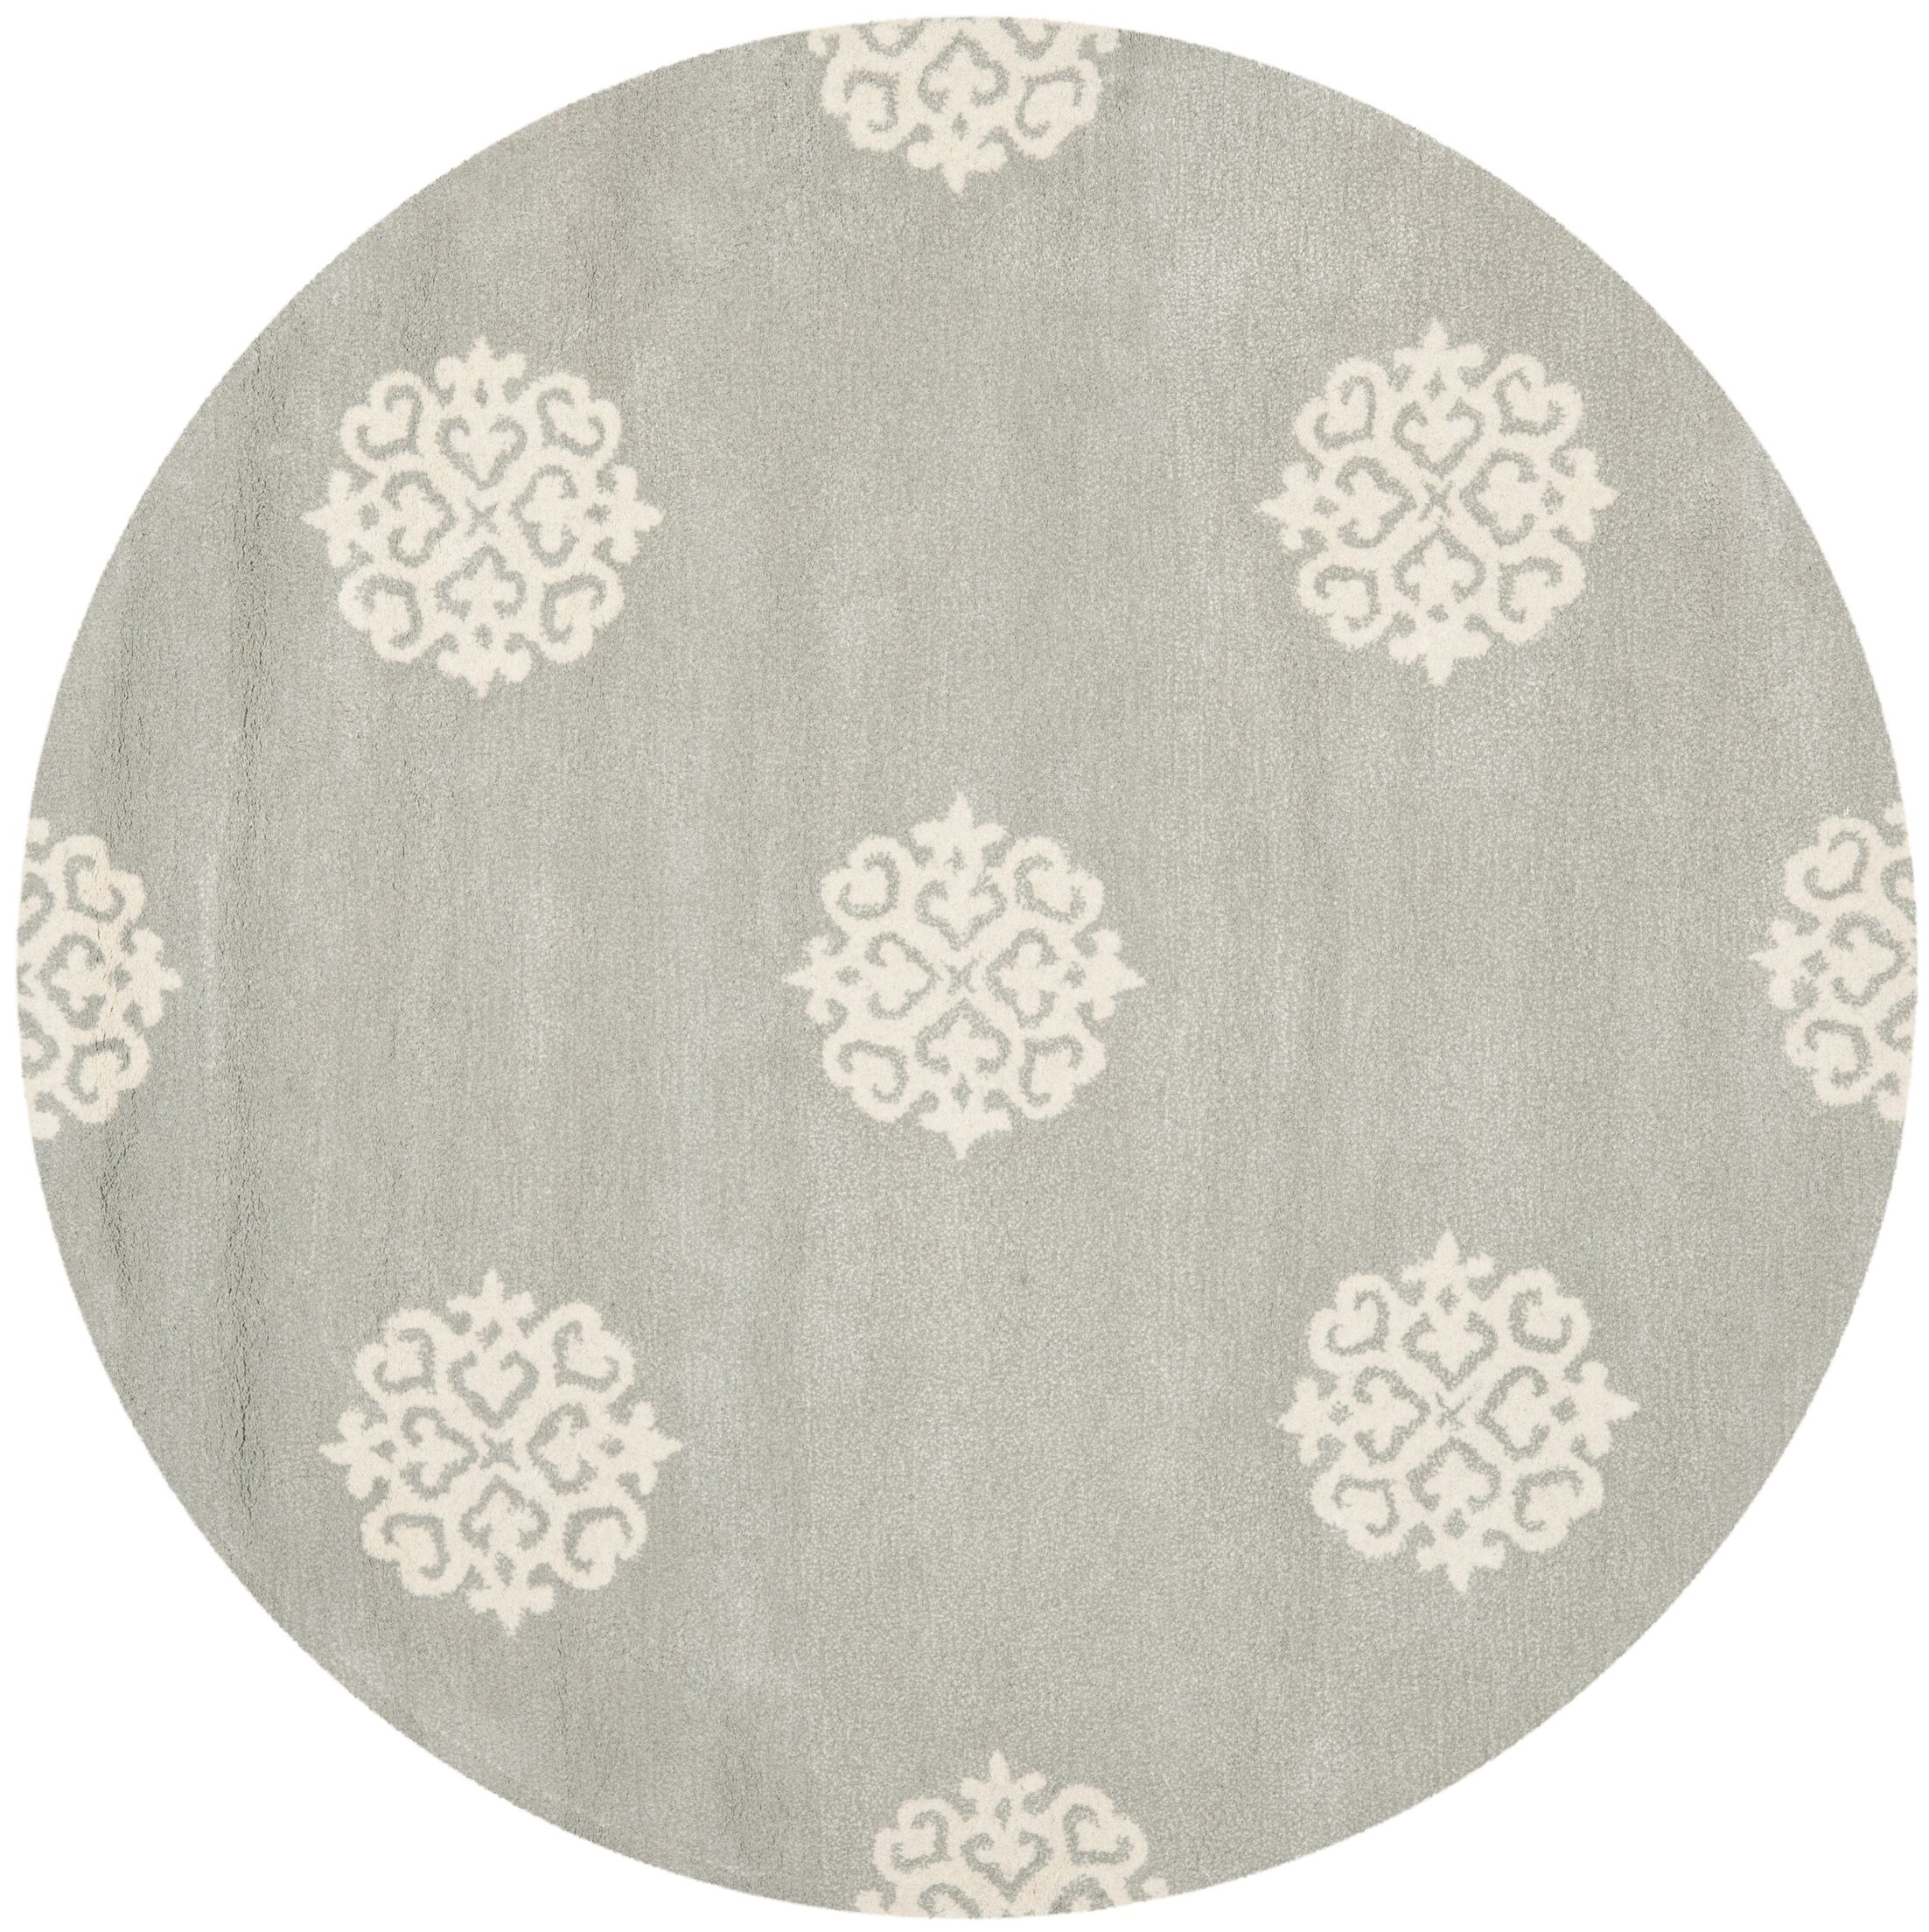 Backstrom Hand-Tufted Gray/Ivory Area Rug Rug Size: Round 4'